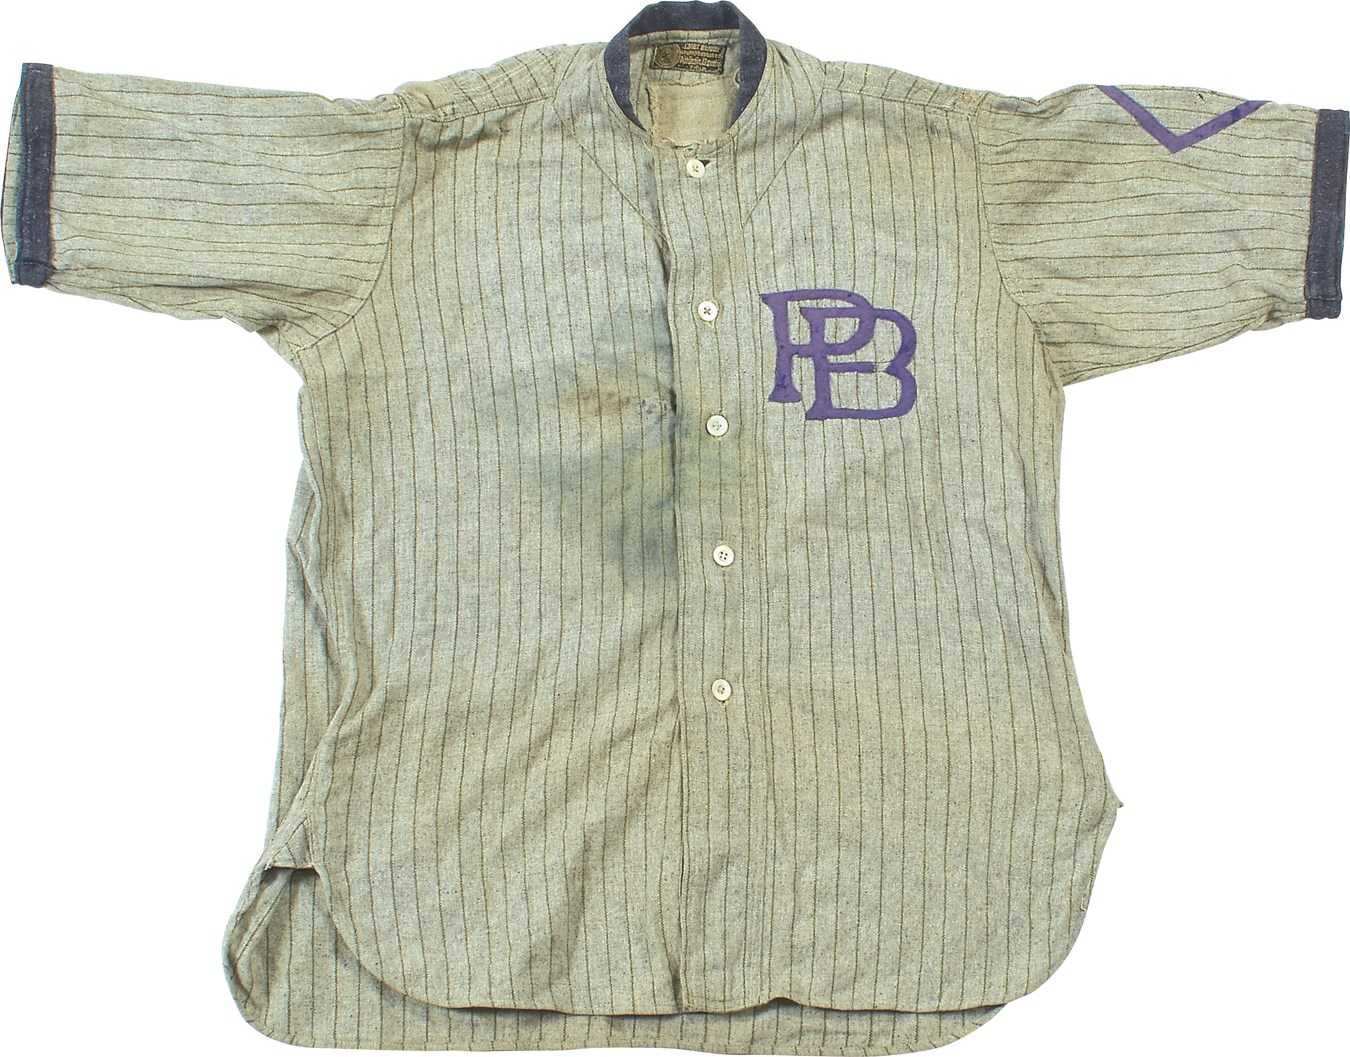 210044460 1910s Chief Bender Sporting Goods Full Baseball Uniform - Only One Known